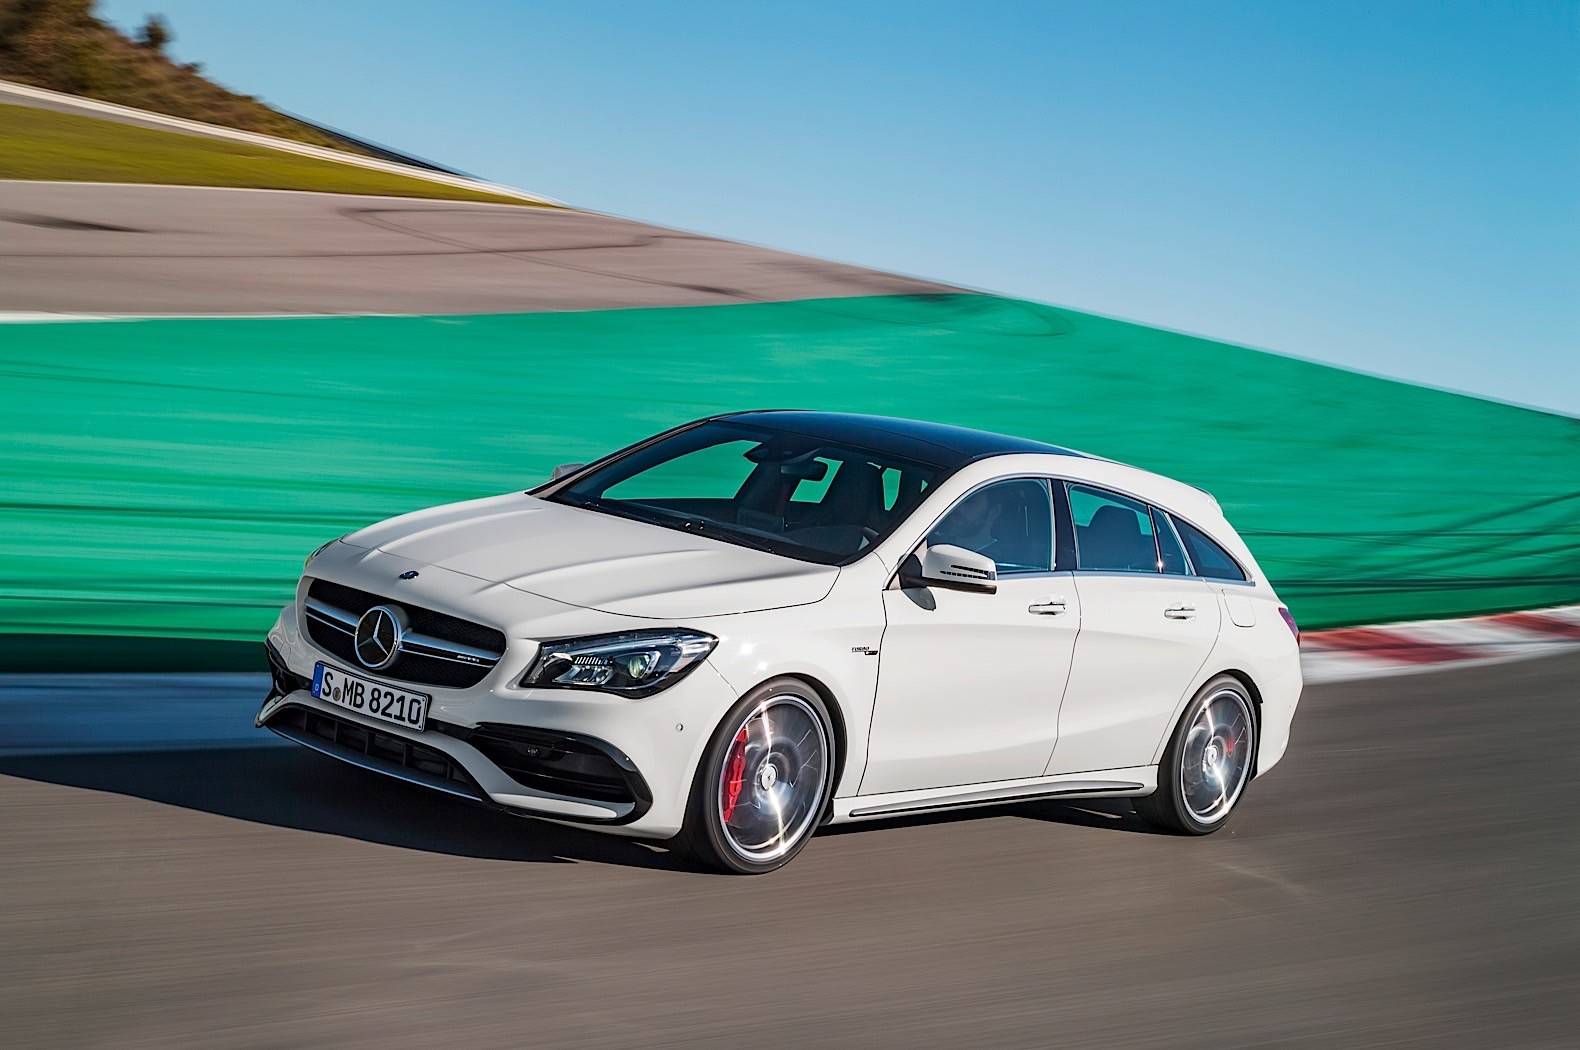 https://s1.cdn.autoevolution.com/images/news/gallery/2017-mercedes-benz-cla-cla-shooting-brake-priced-in-germany_11.jpg